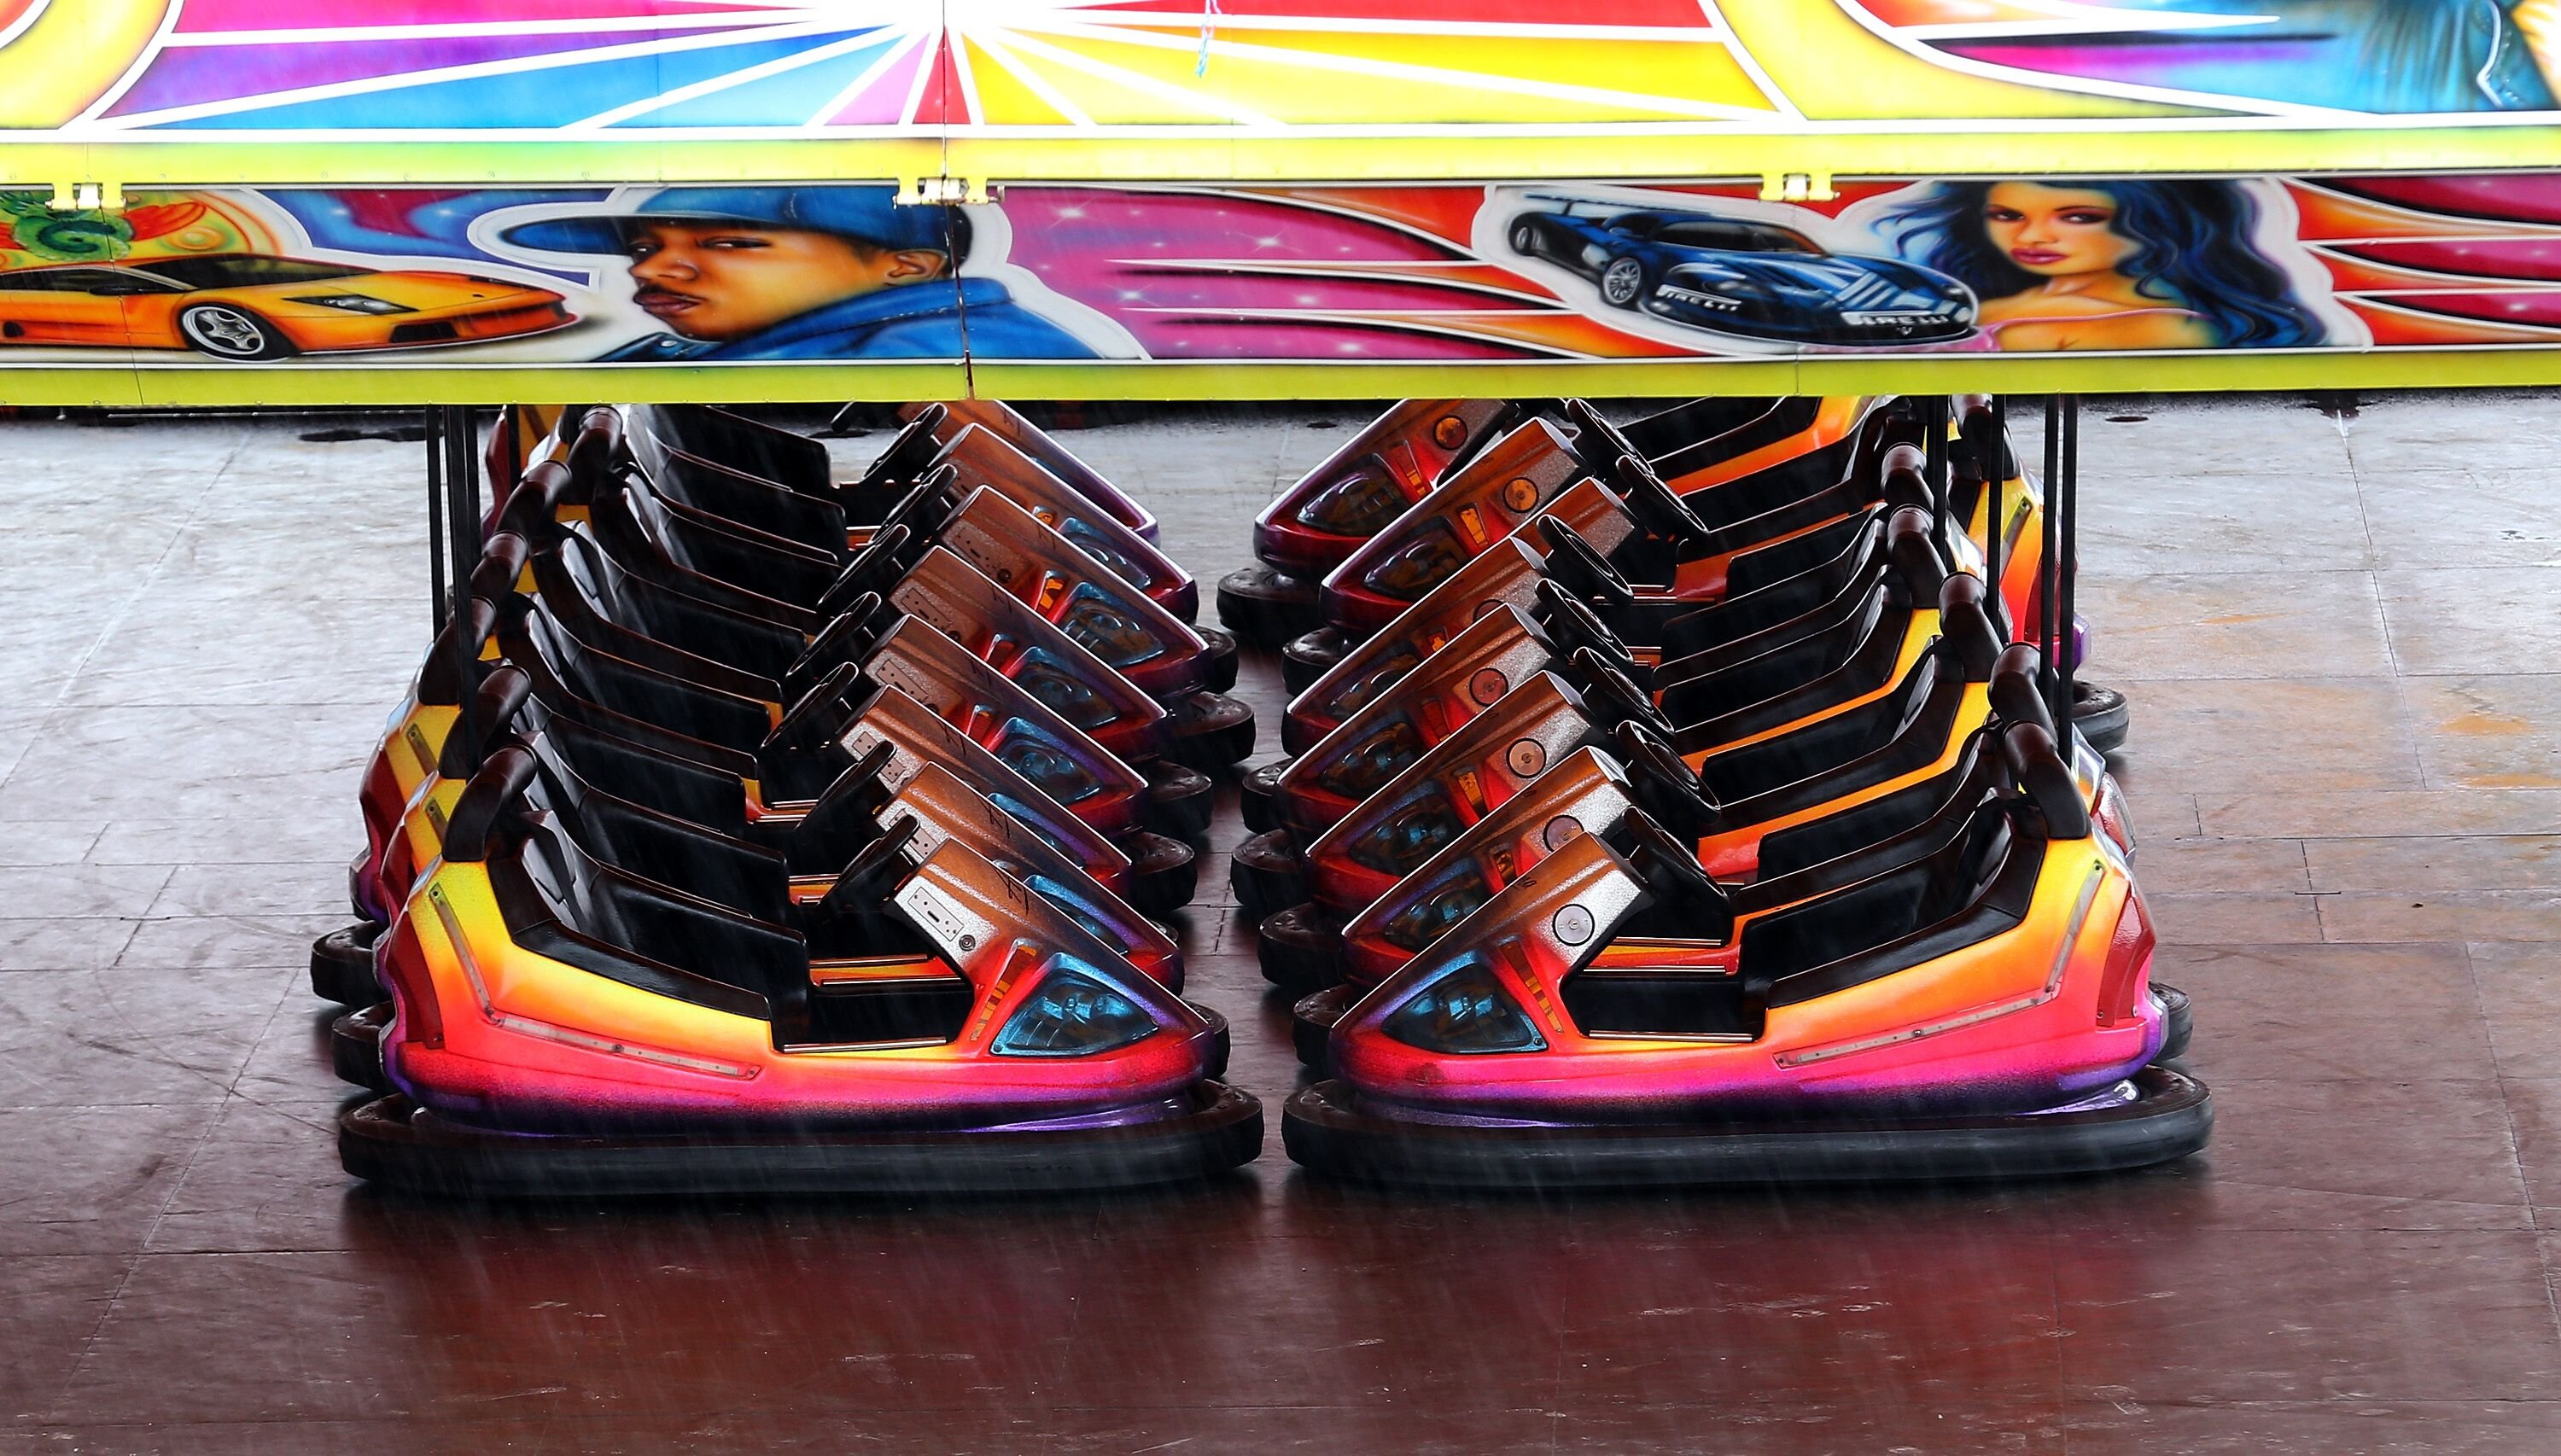 Ride Bumper Cars On An Ice Skating Rink In Rhode Island